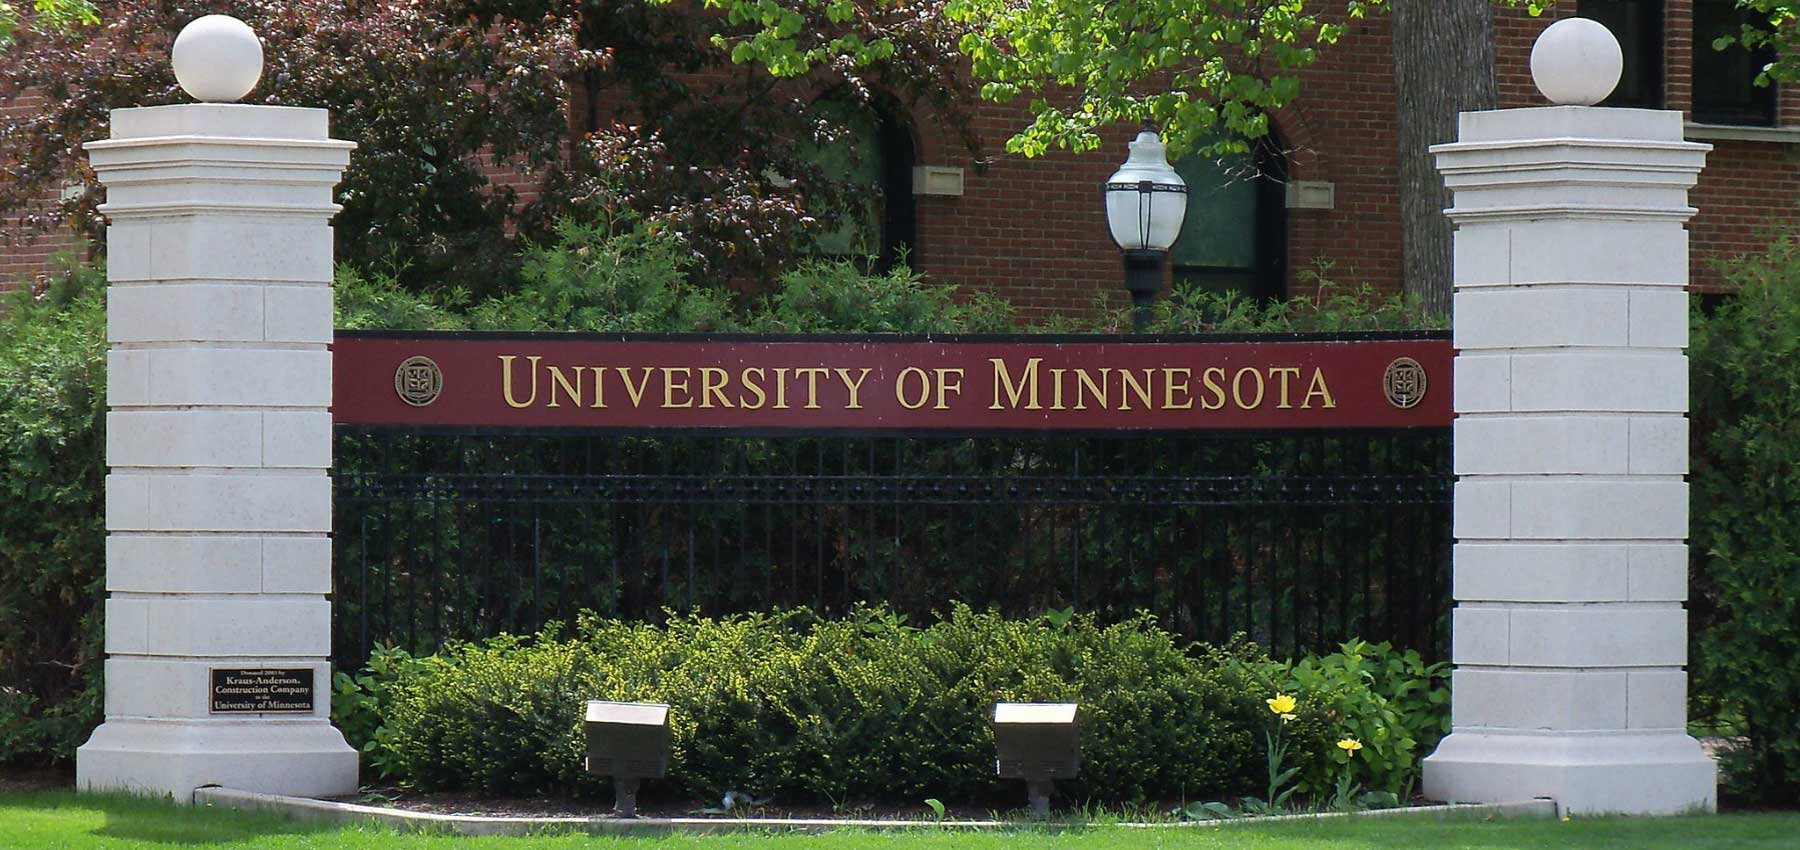 University of Minnesota campus entrance